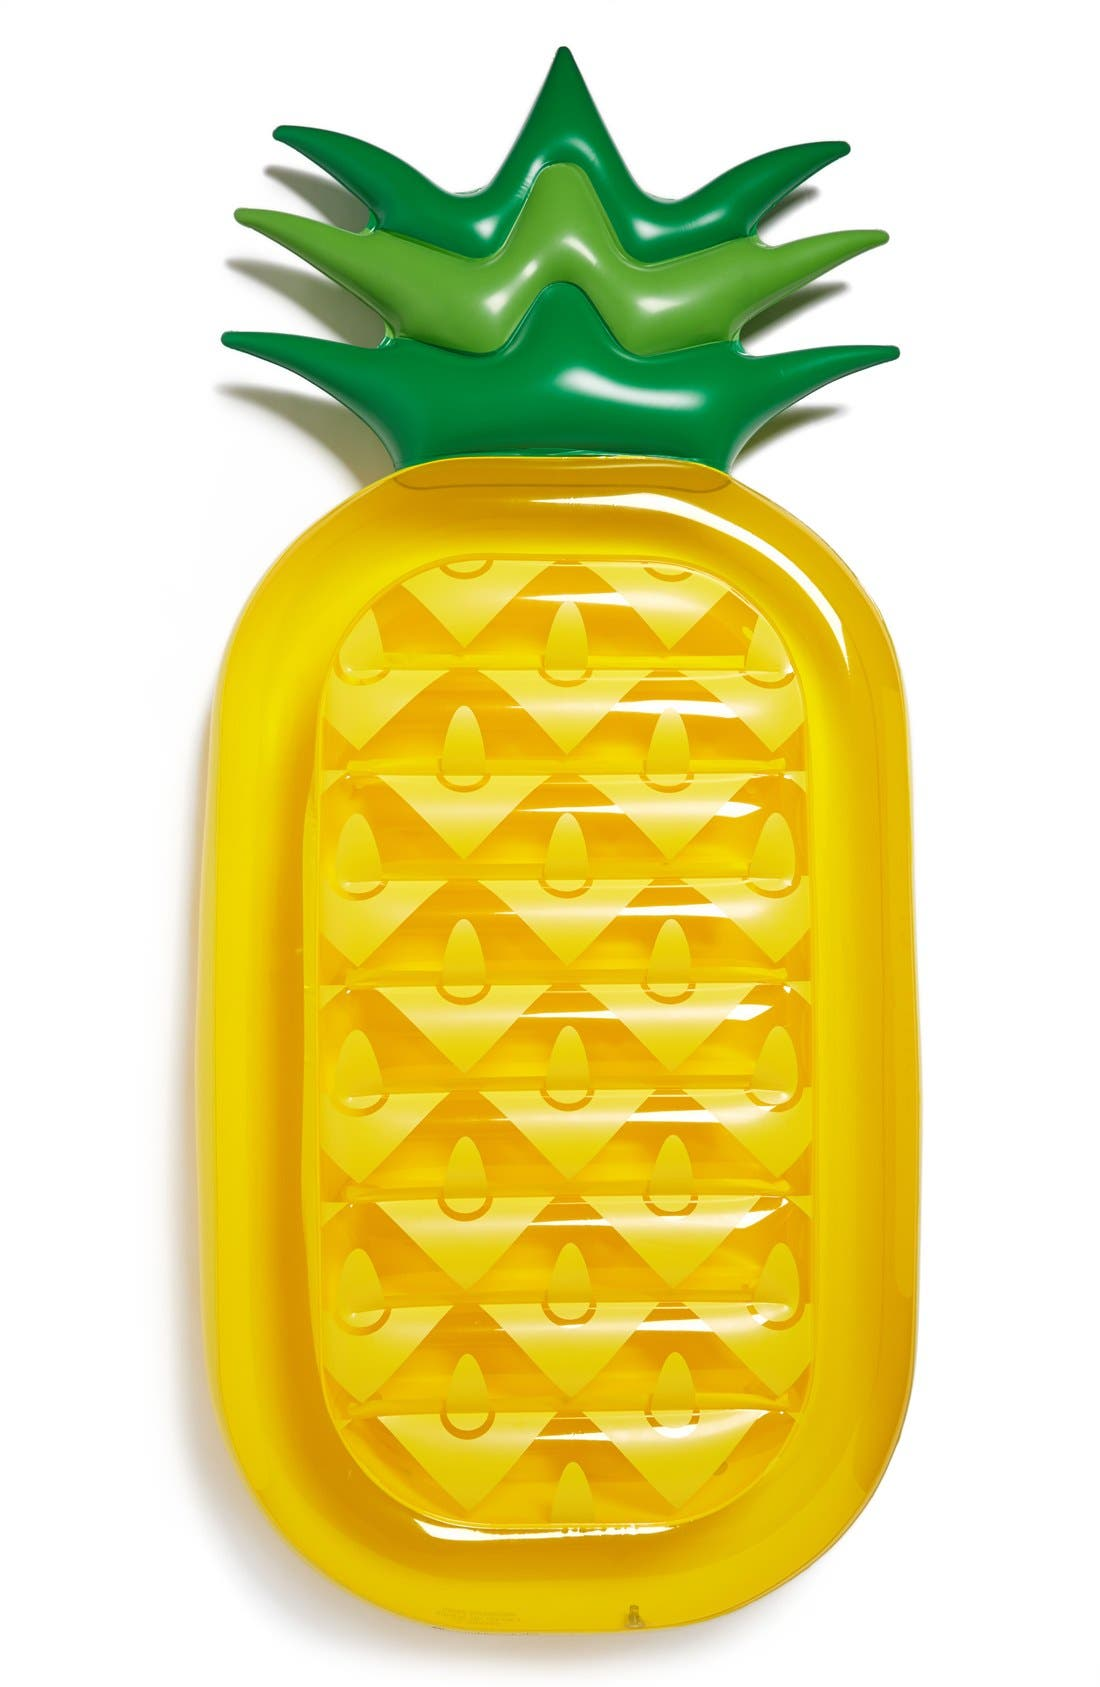 Alternate Image 1 Selected - Sunnylife 'Really Big' Inflatable Pineapple Pool Floatie